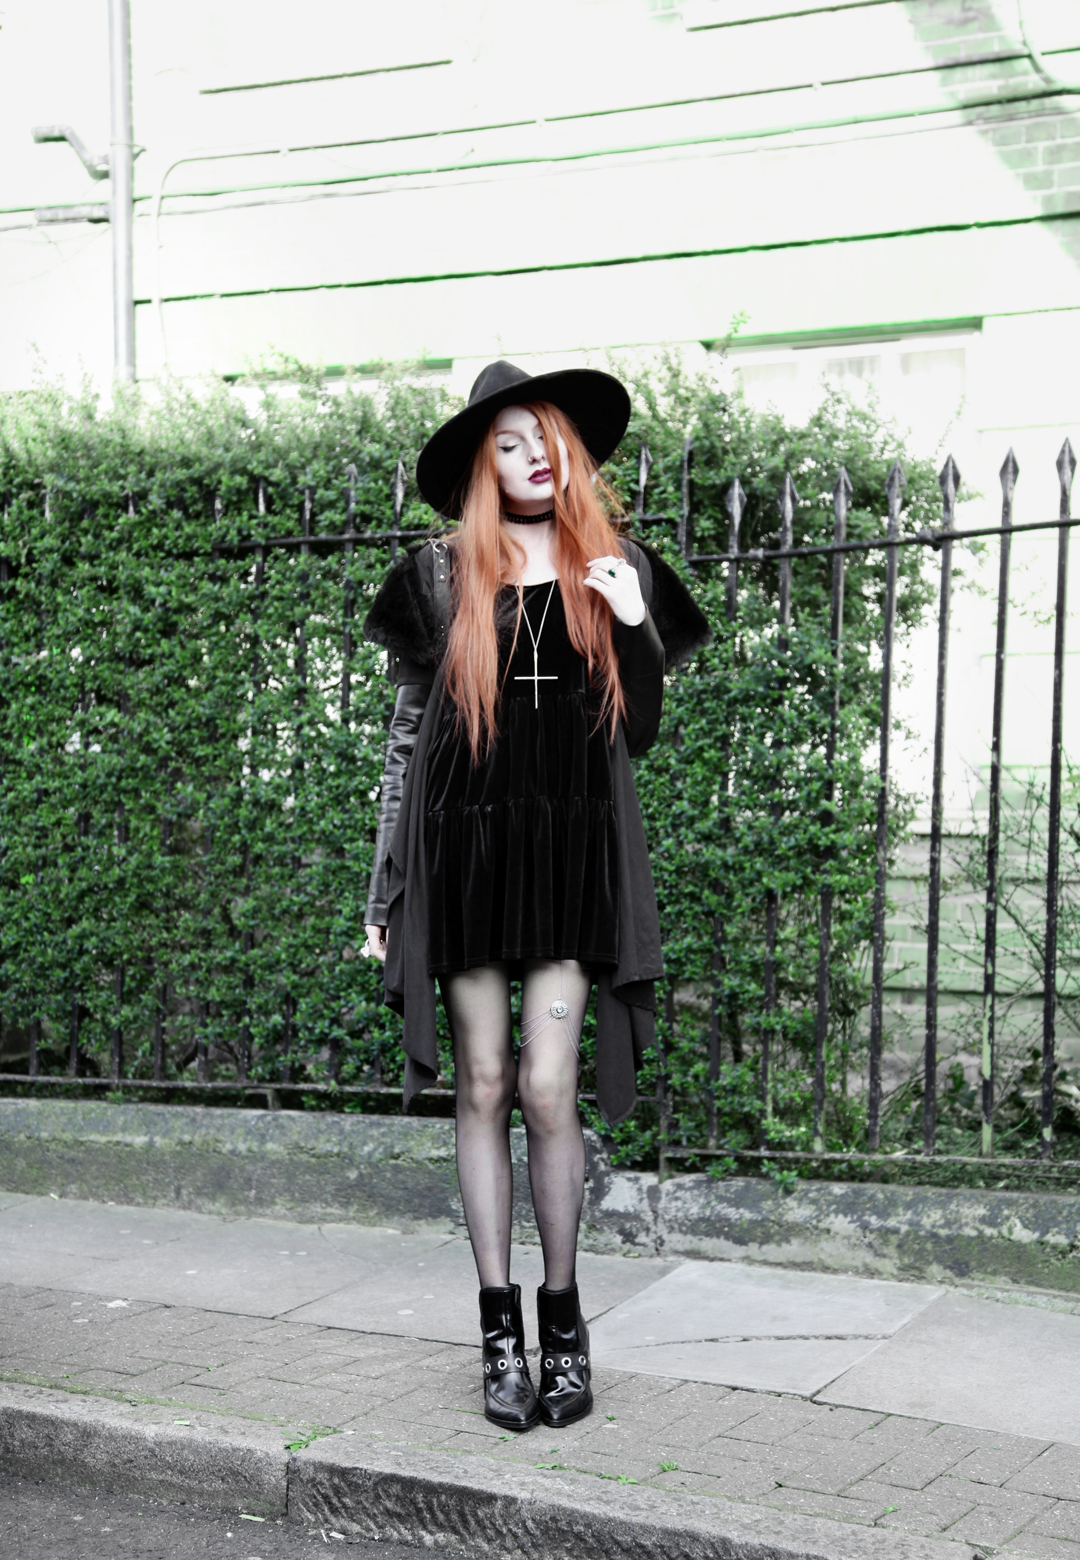 Olivia Emily wears Asos Reclaimed Vintage tiered black velvet dress, Killstar Witch Brim hat, Sanctus Asylum vegan suede coat, River Island leg chain and Asos eyelet boots